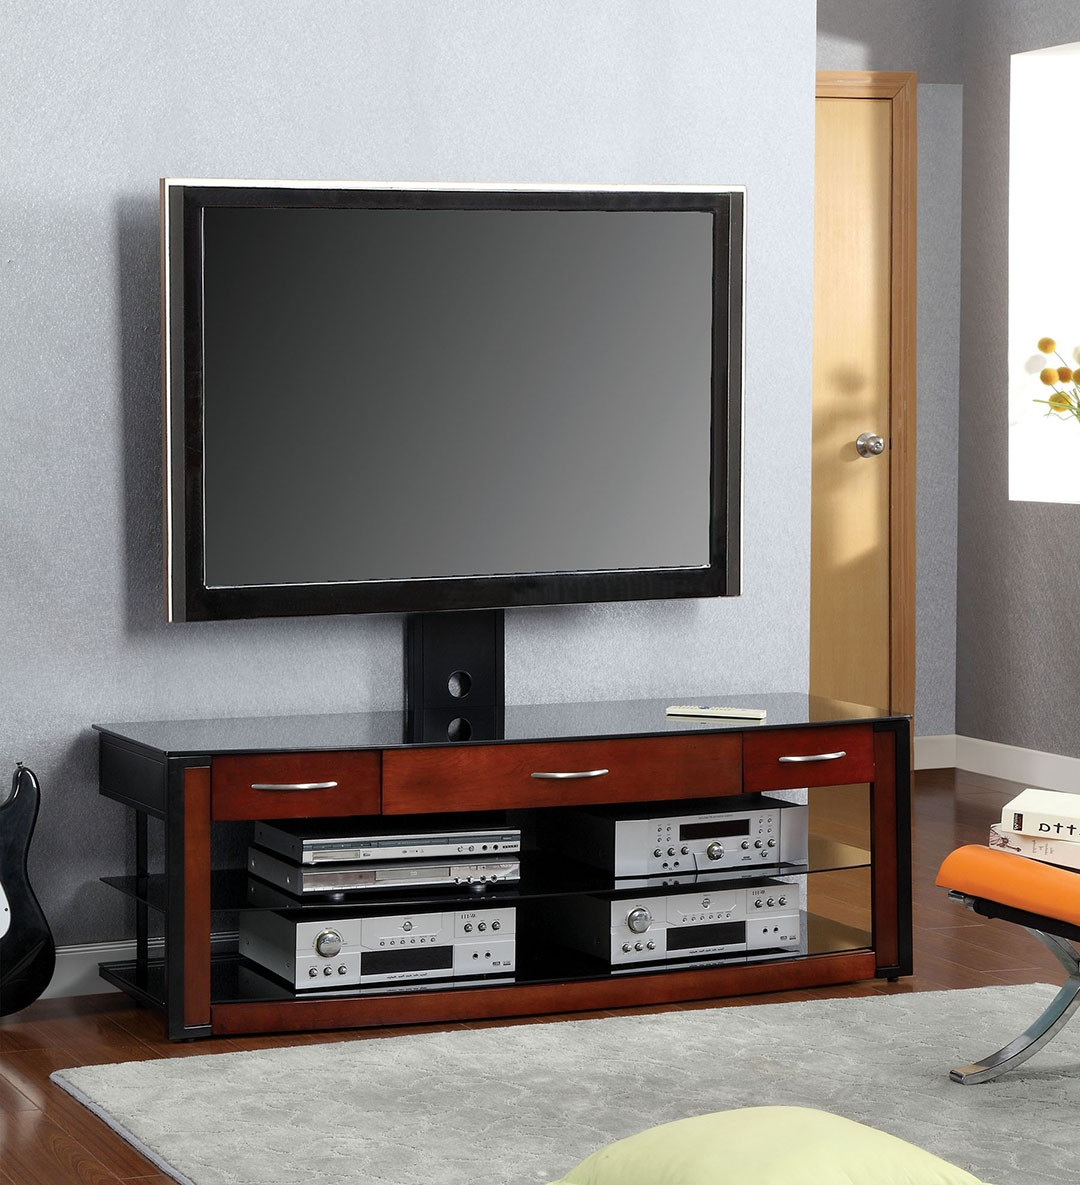 Rectangular Tv Stands Regarding Fashionable Rectangular Wooden Tv Stand With Mount And Glass Shelves For (View 13 of 20)